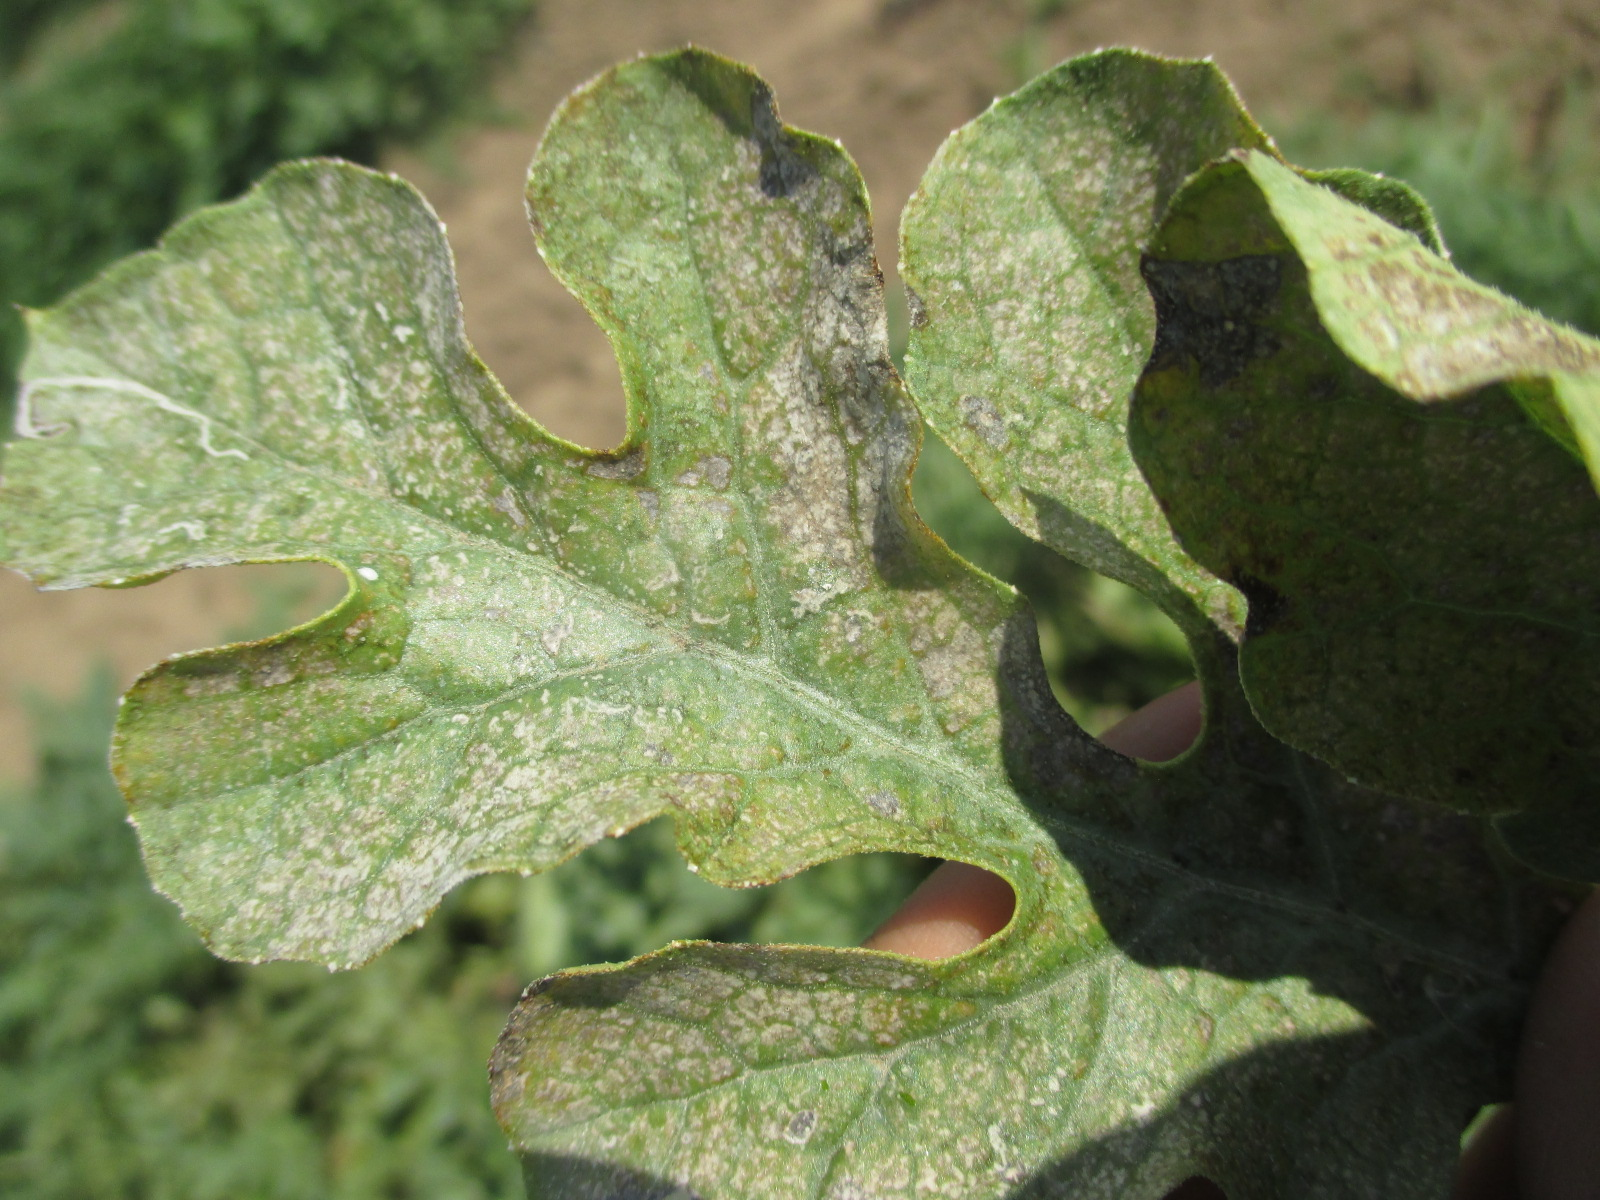 Not All The Watermelon And Cantaloupe Leaf Symptoms Are Caused By Pests Purdue University Vegetable Crops Hotline Bacon, lettuce and cantaloupe sandwich, blackberry dessert sauce with cantaloupe fans, cantaloupe cooler salad watermelon and cantaloupe leaf symptoms